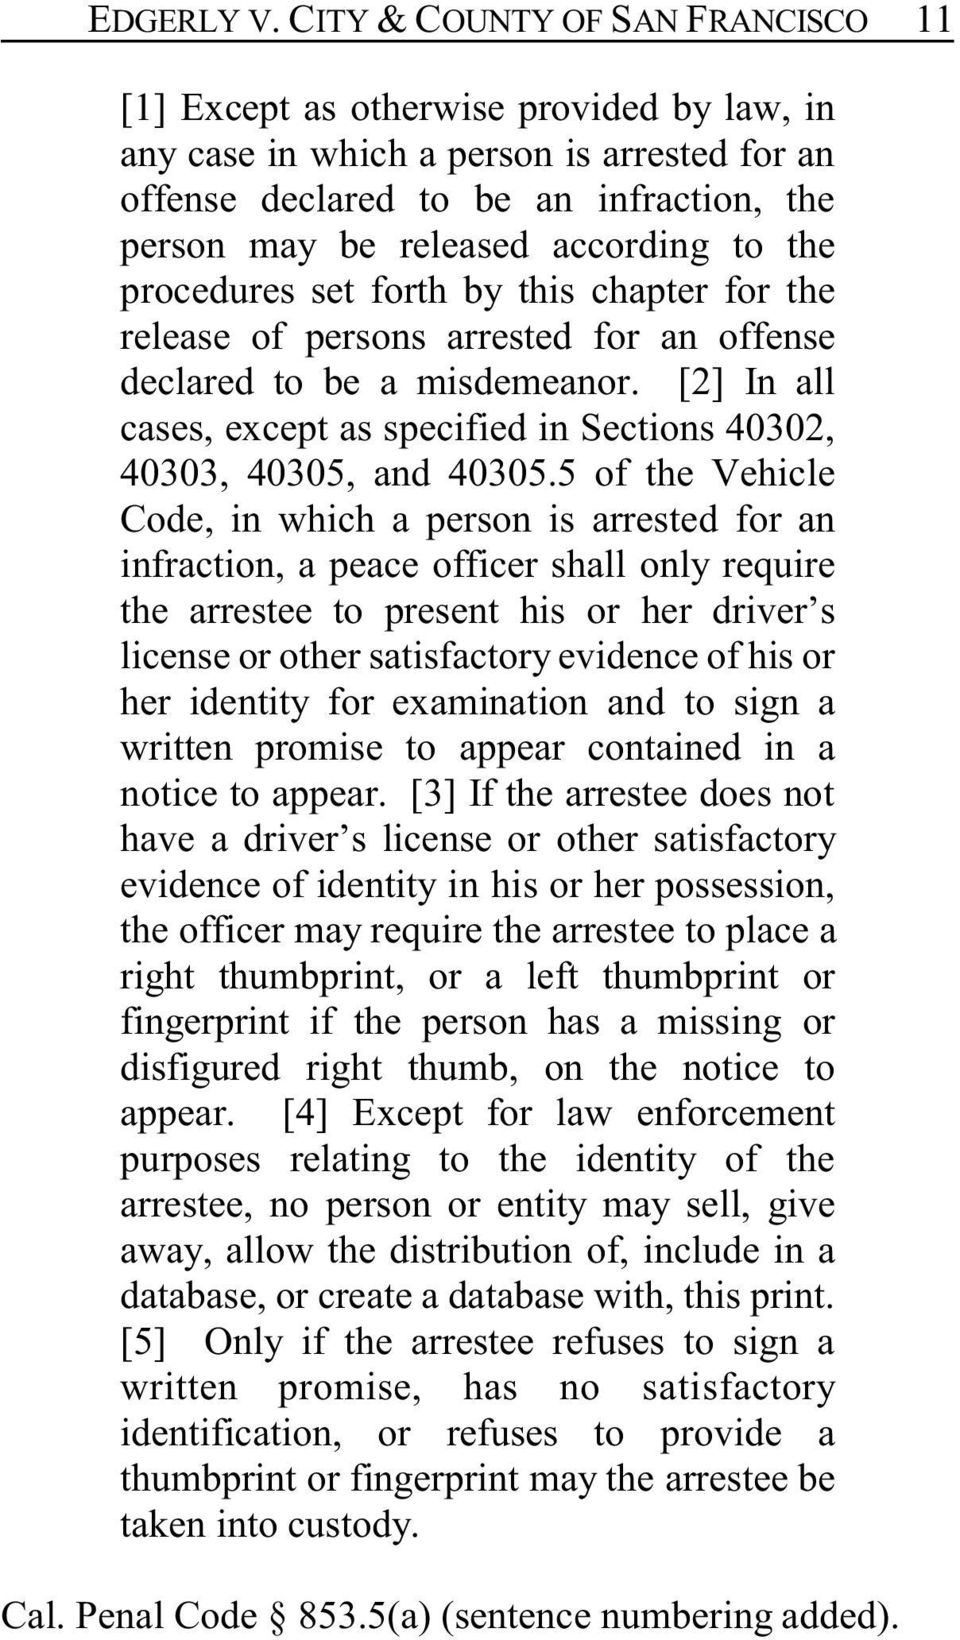 to the procedures set forth by this chapter for the release of persons arrested for an offense declared to be a misdemeanor.